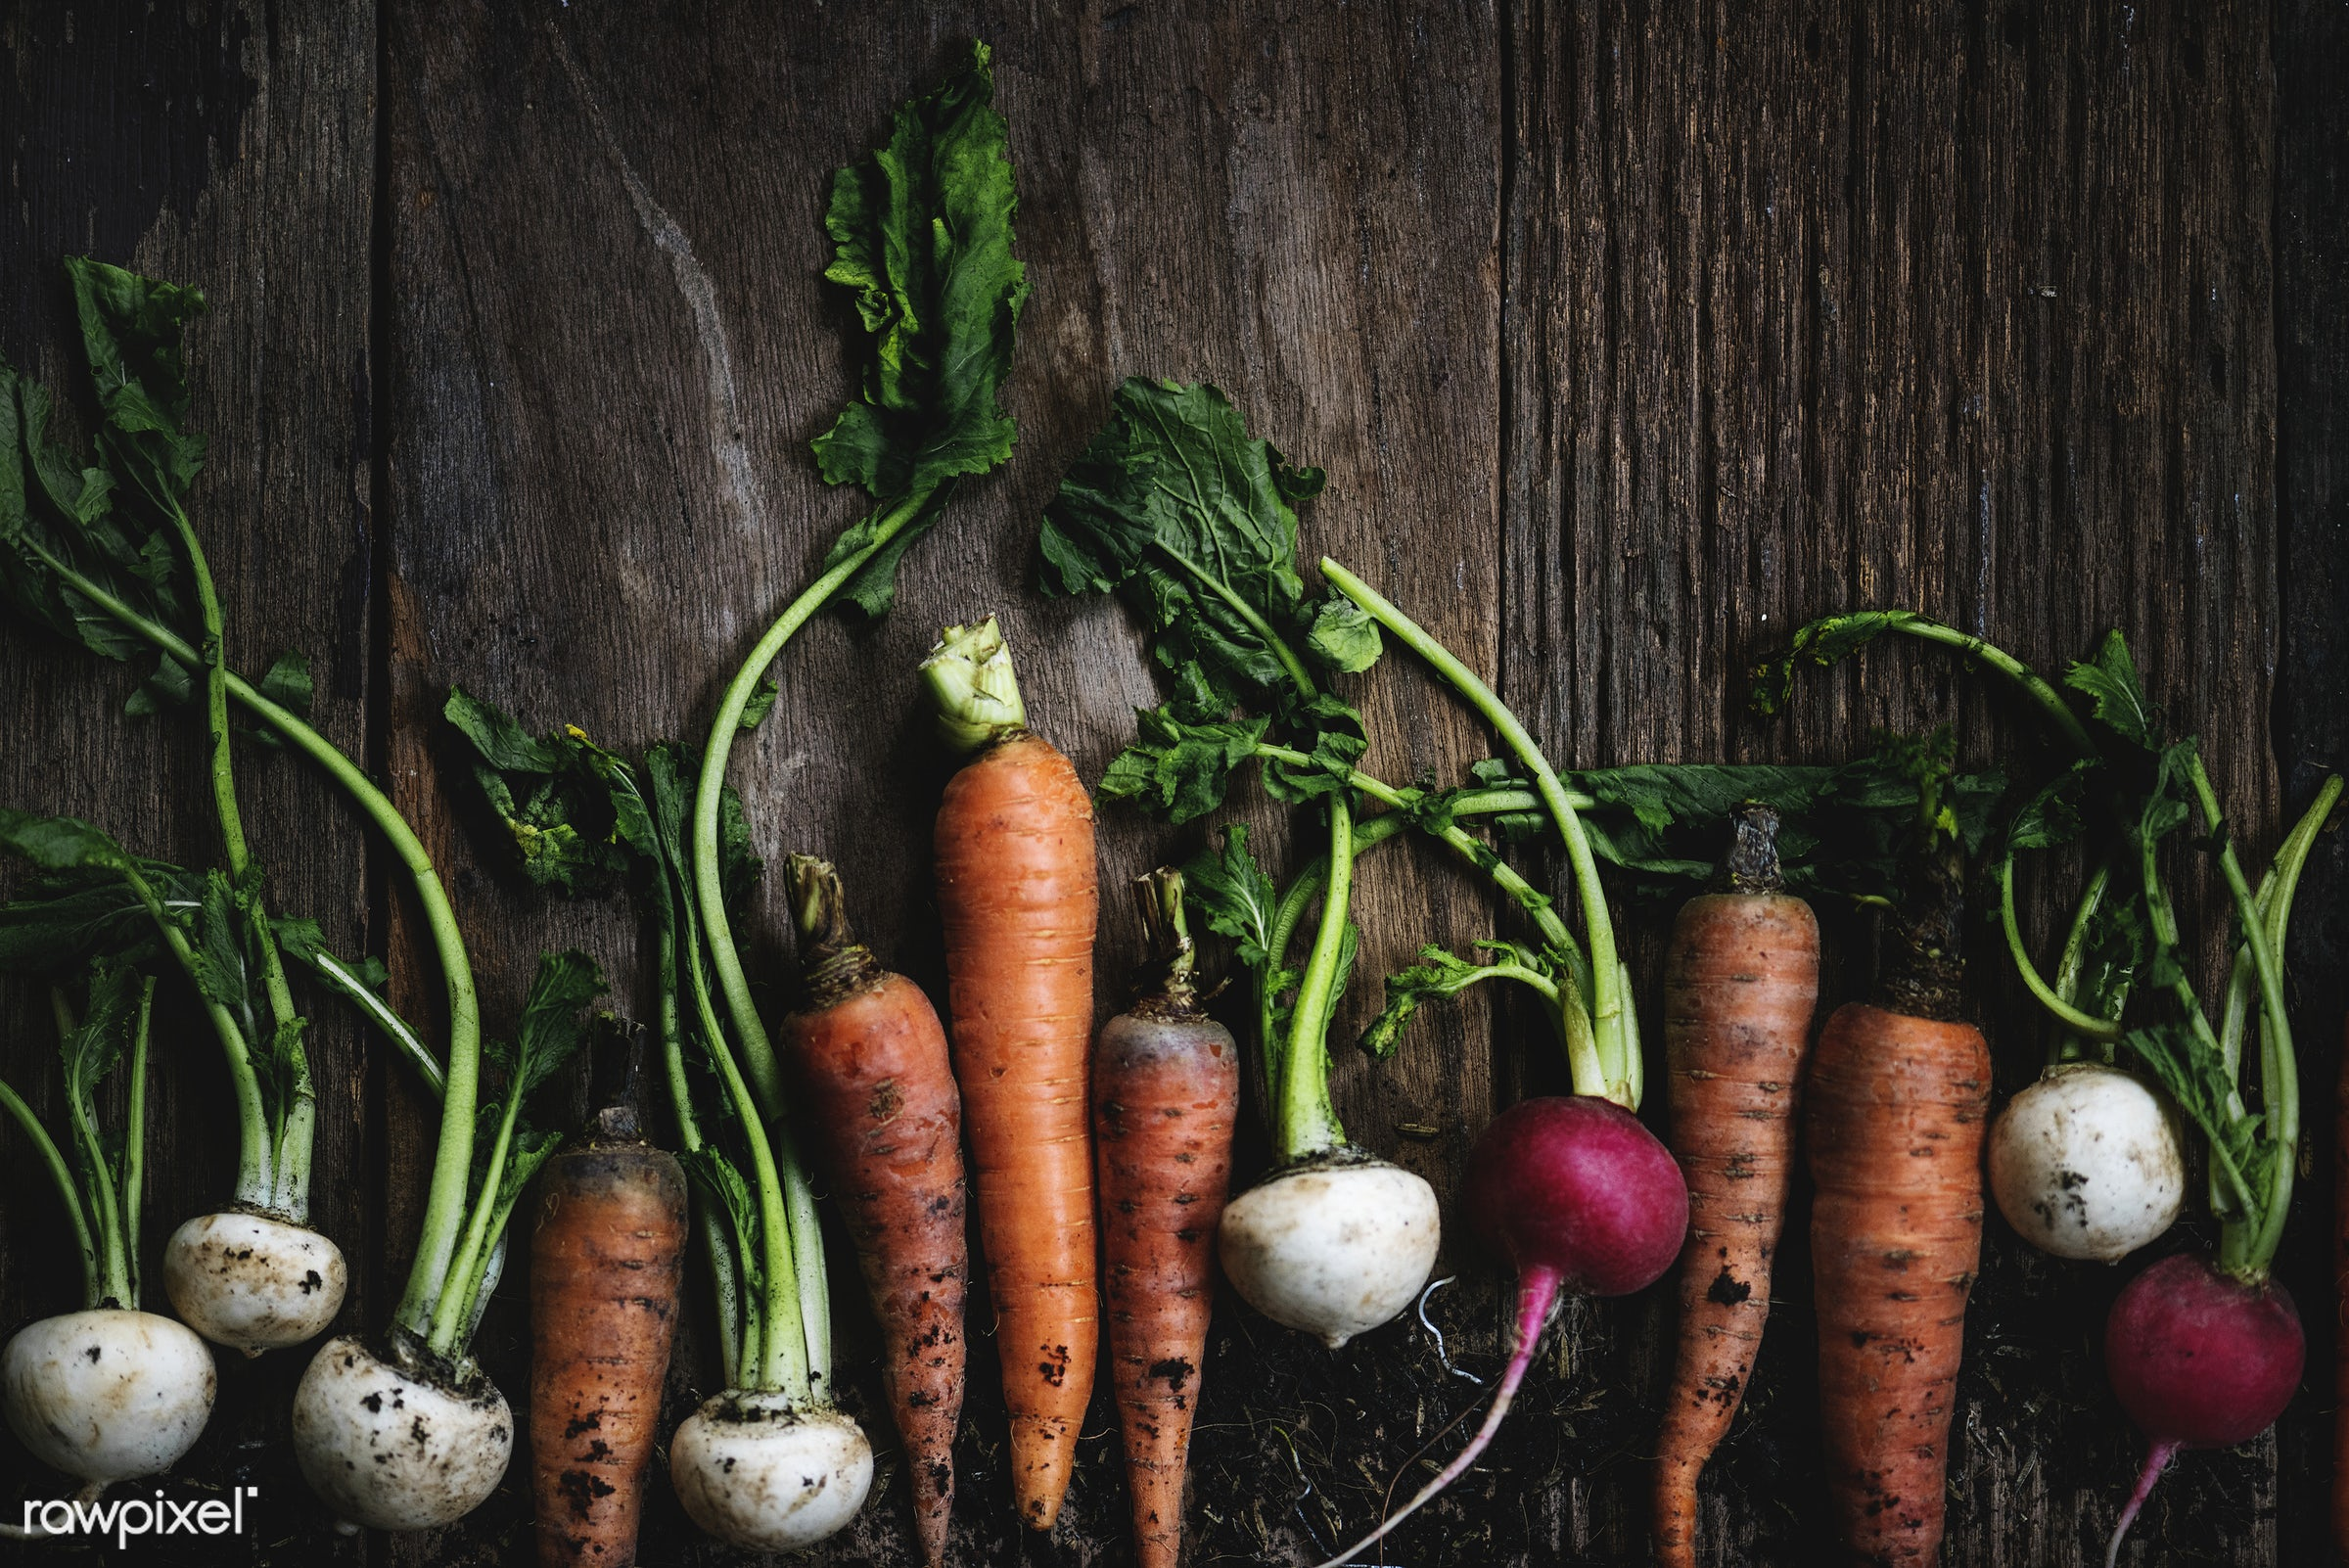 Root vegetables - raw, nobody, set, farm, ingredients, nature, fresh, wooden background, various, pile, aerial view, dirt,...